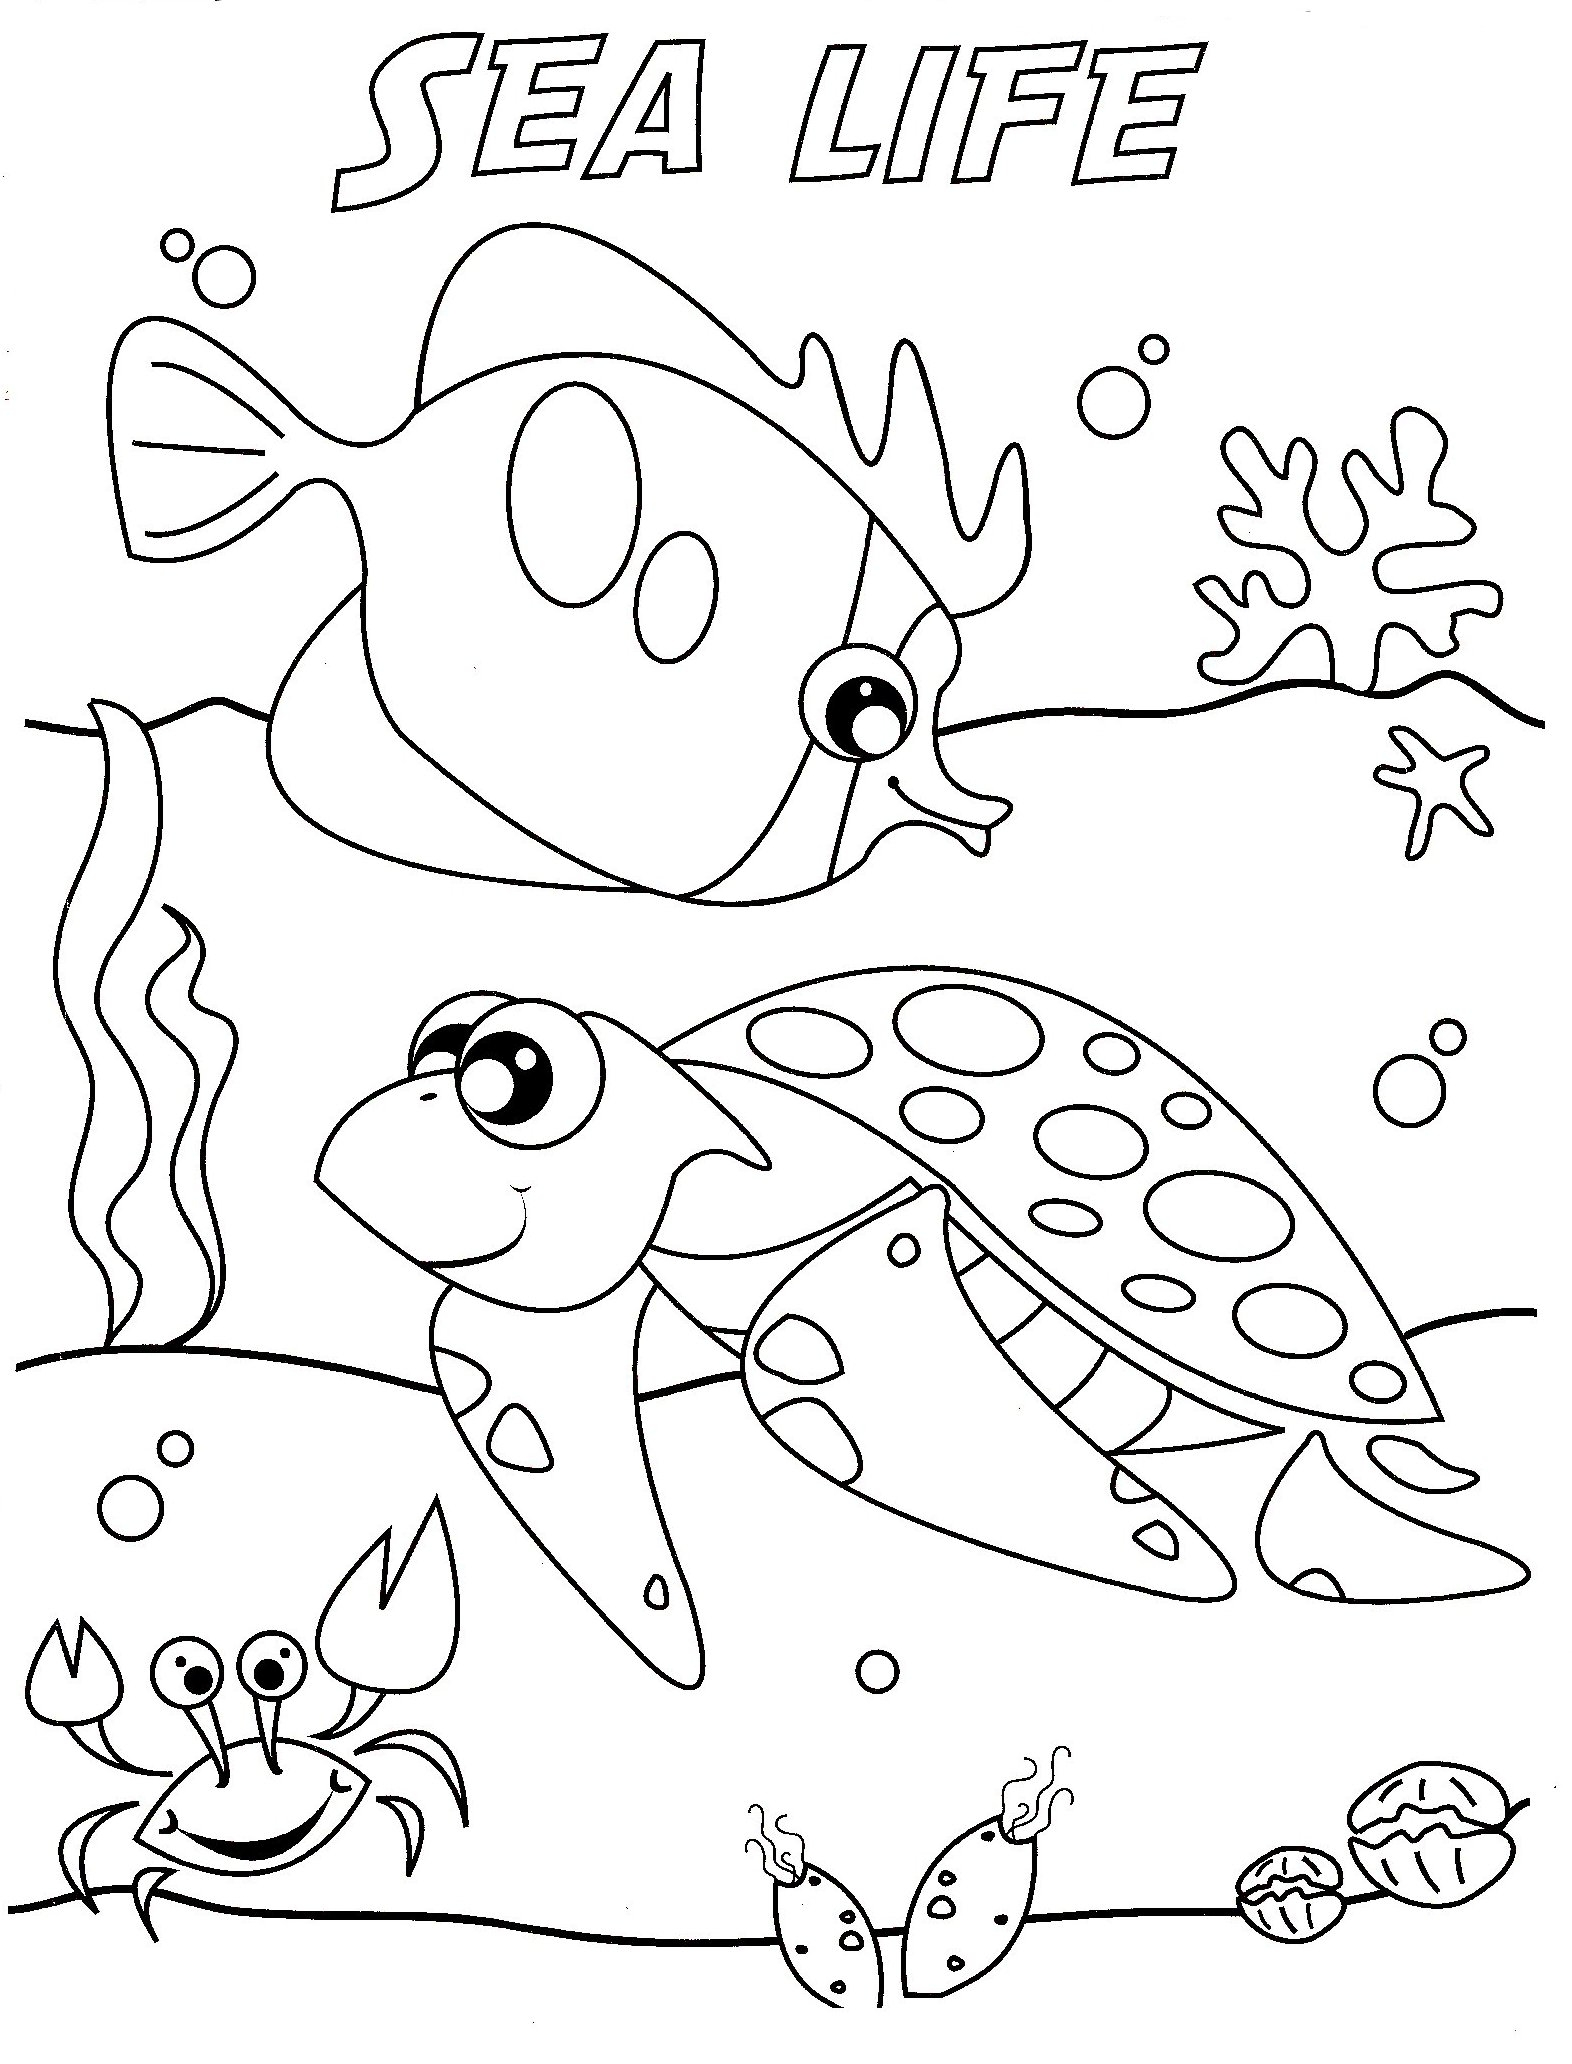 Ocean Coloring Pages - Sea Life